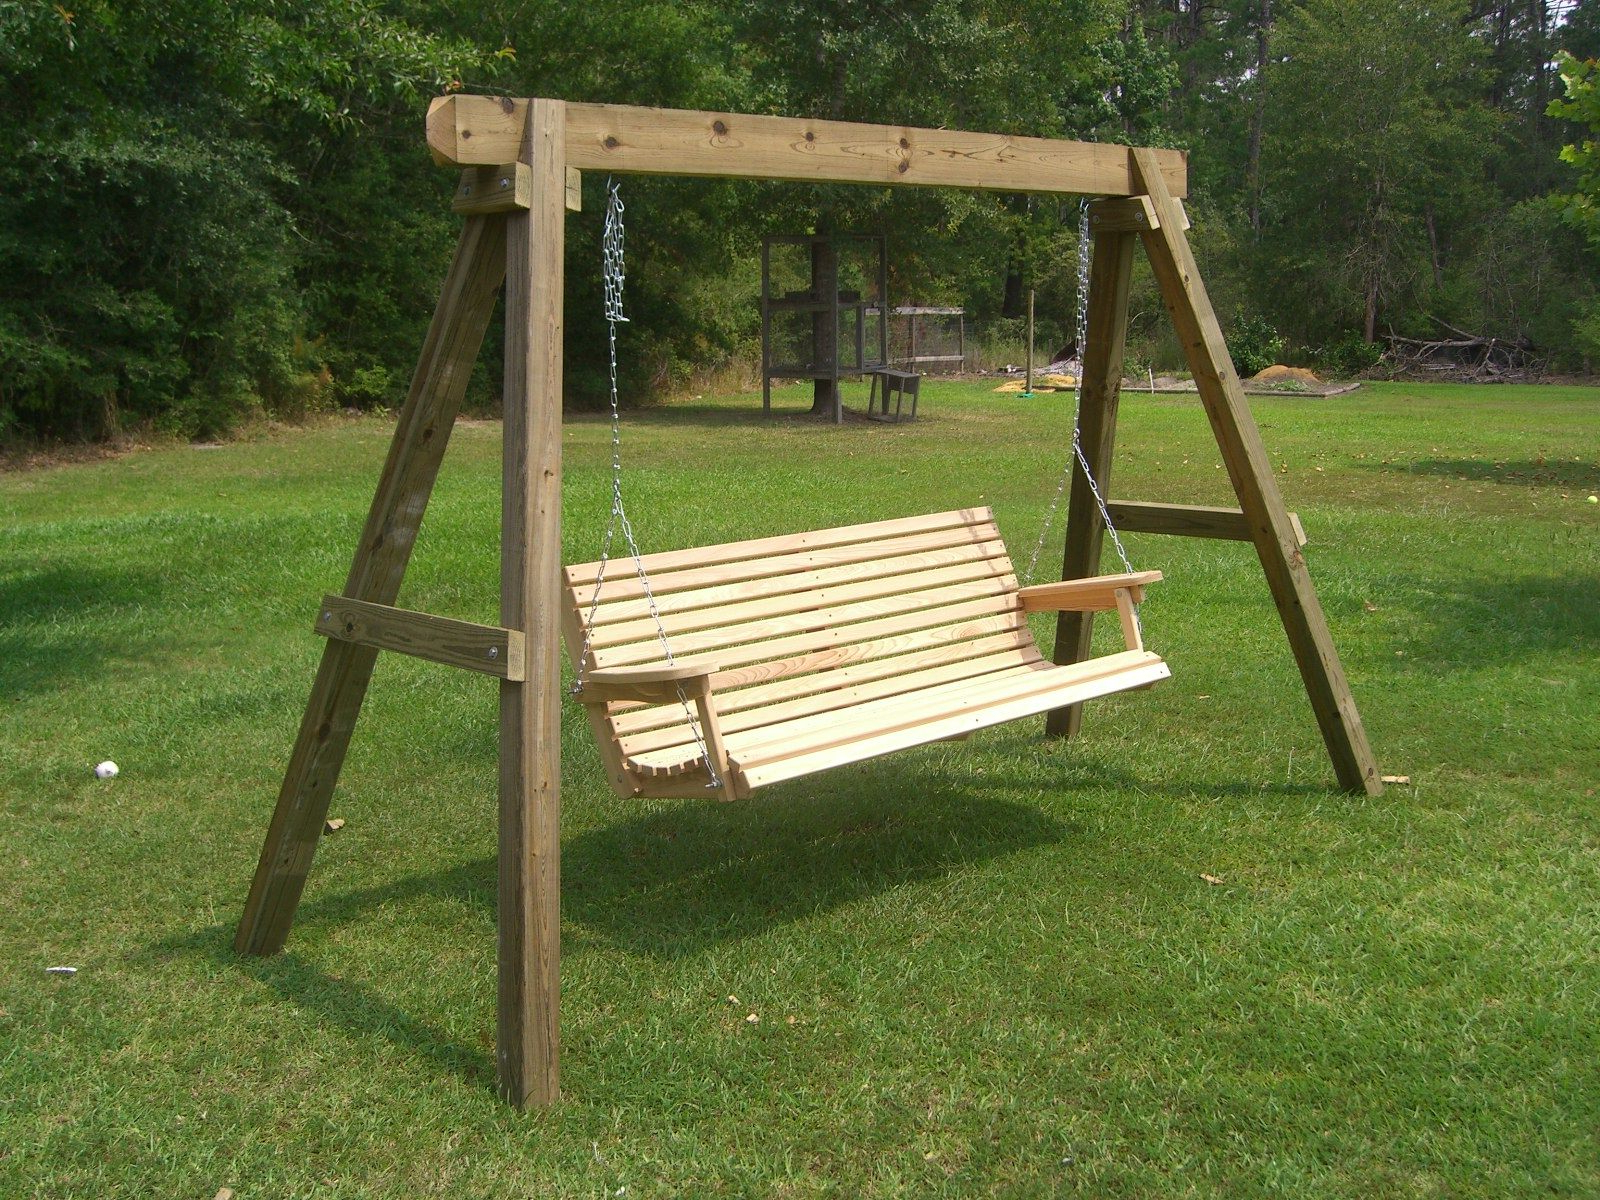 Porch Swing Frame, Porch Swing Throughout Recent Porch Swings With Stand (View 21 of 25)